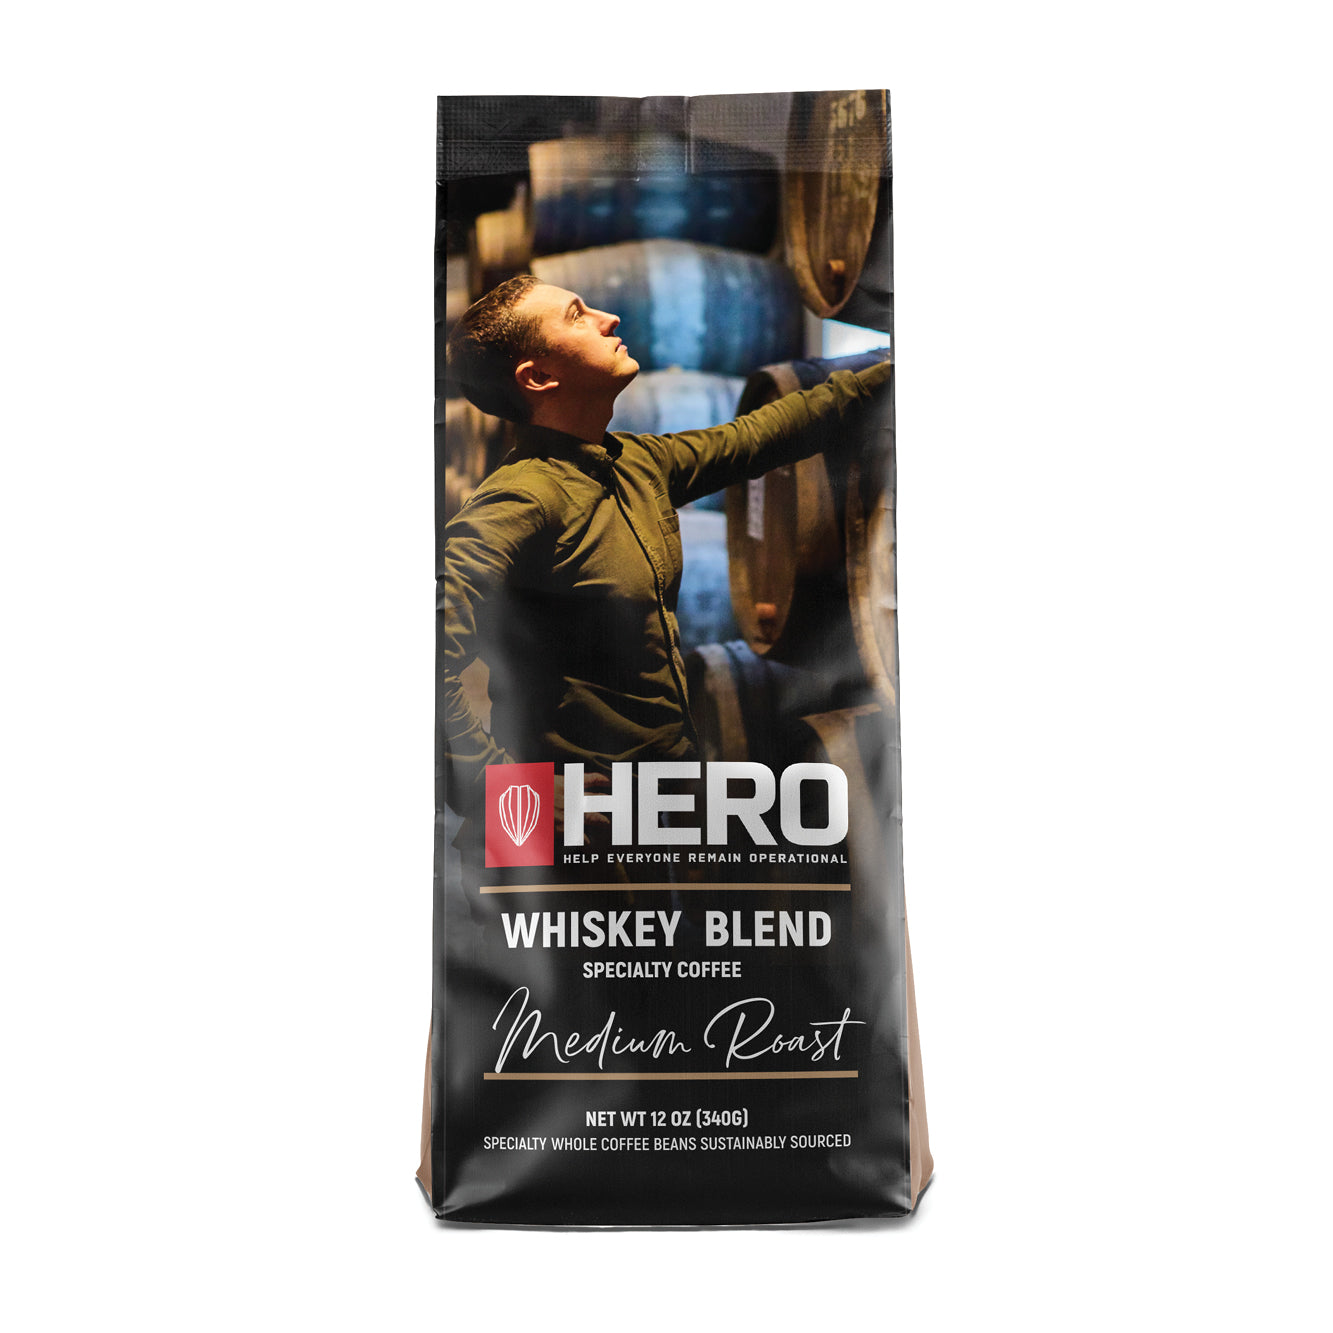 HERO Whiskey Blend Medium Roast Coffee